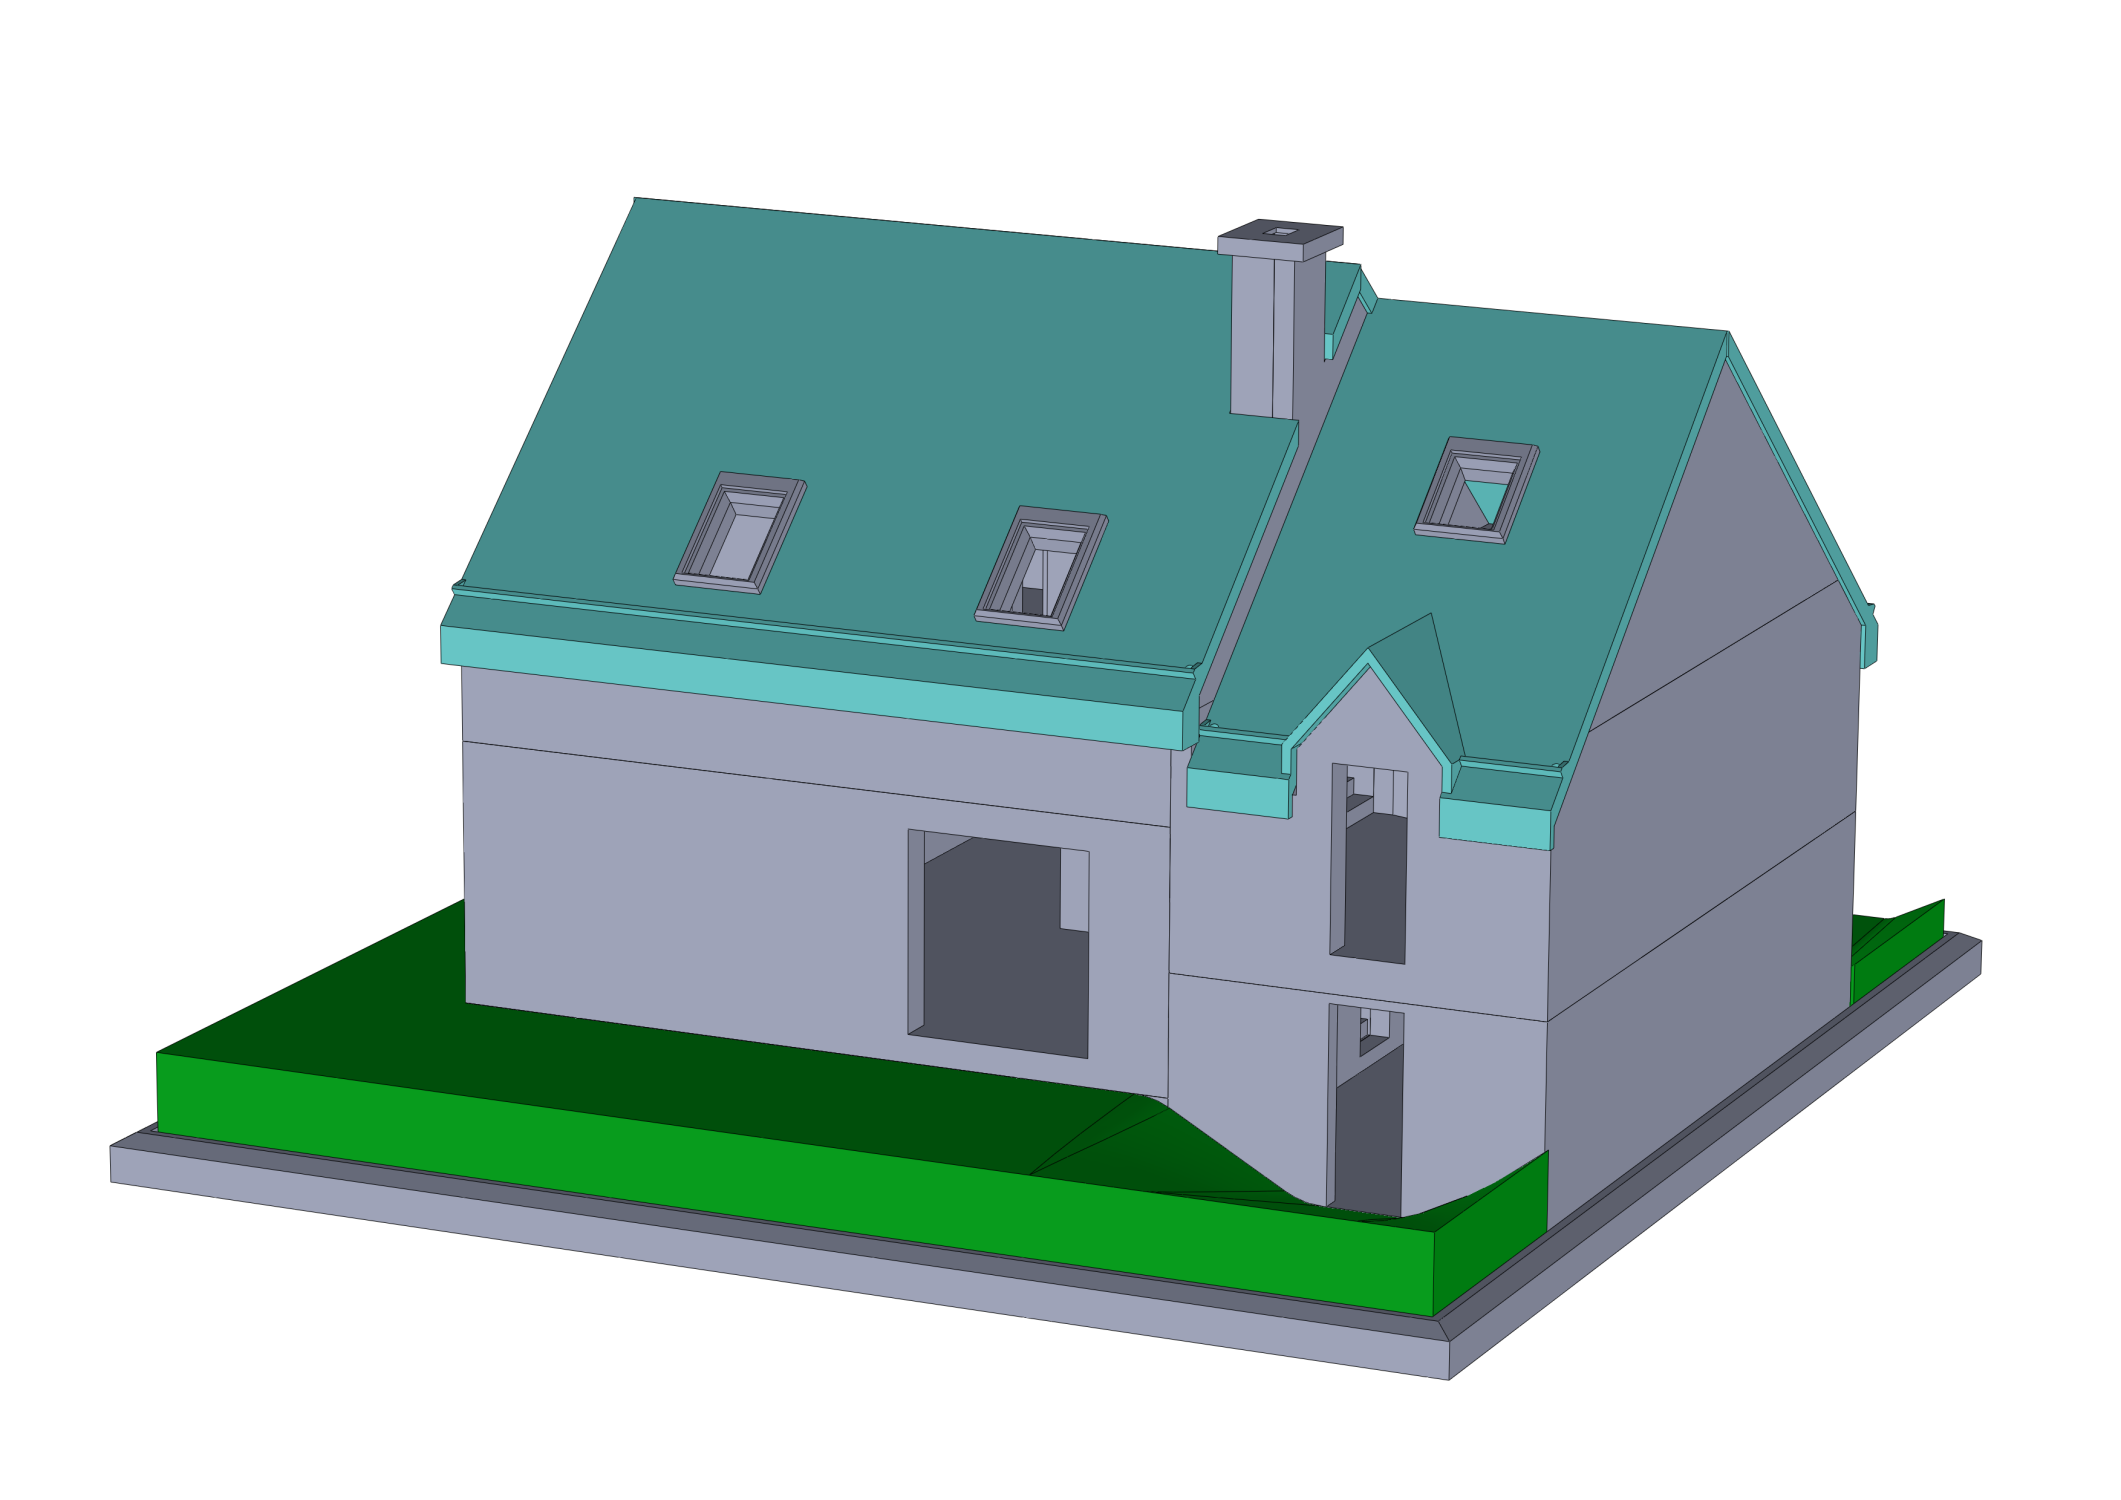 assemblage_maison_montee_3.png Download free STL file Semi-detached house • 3D printer model, mcbat